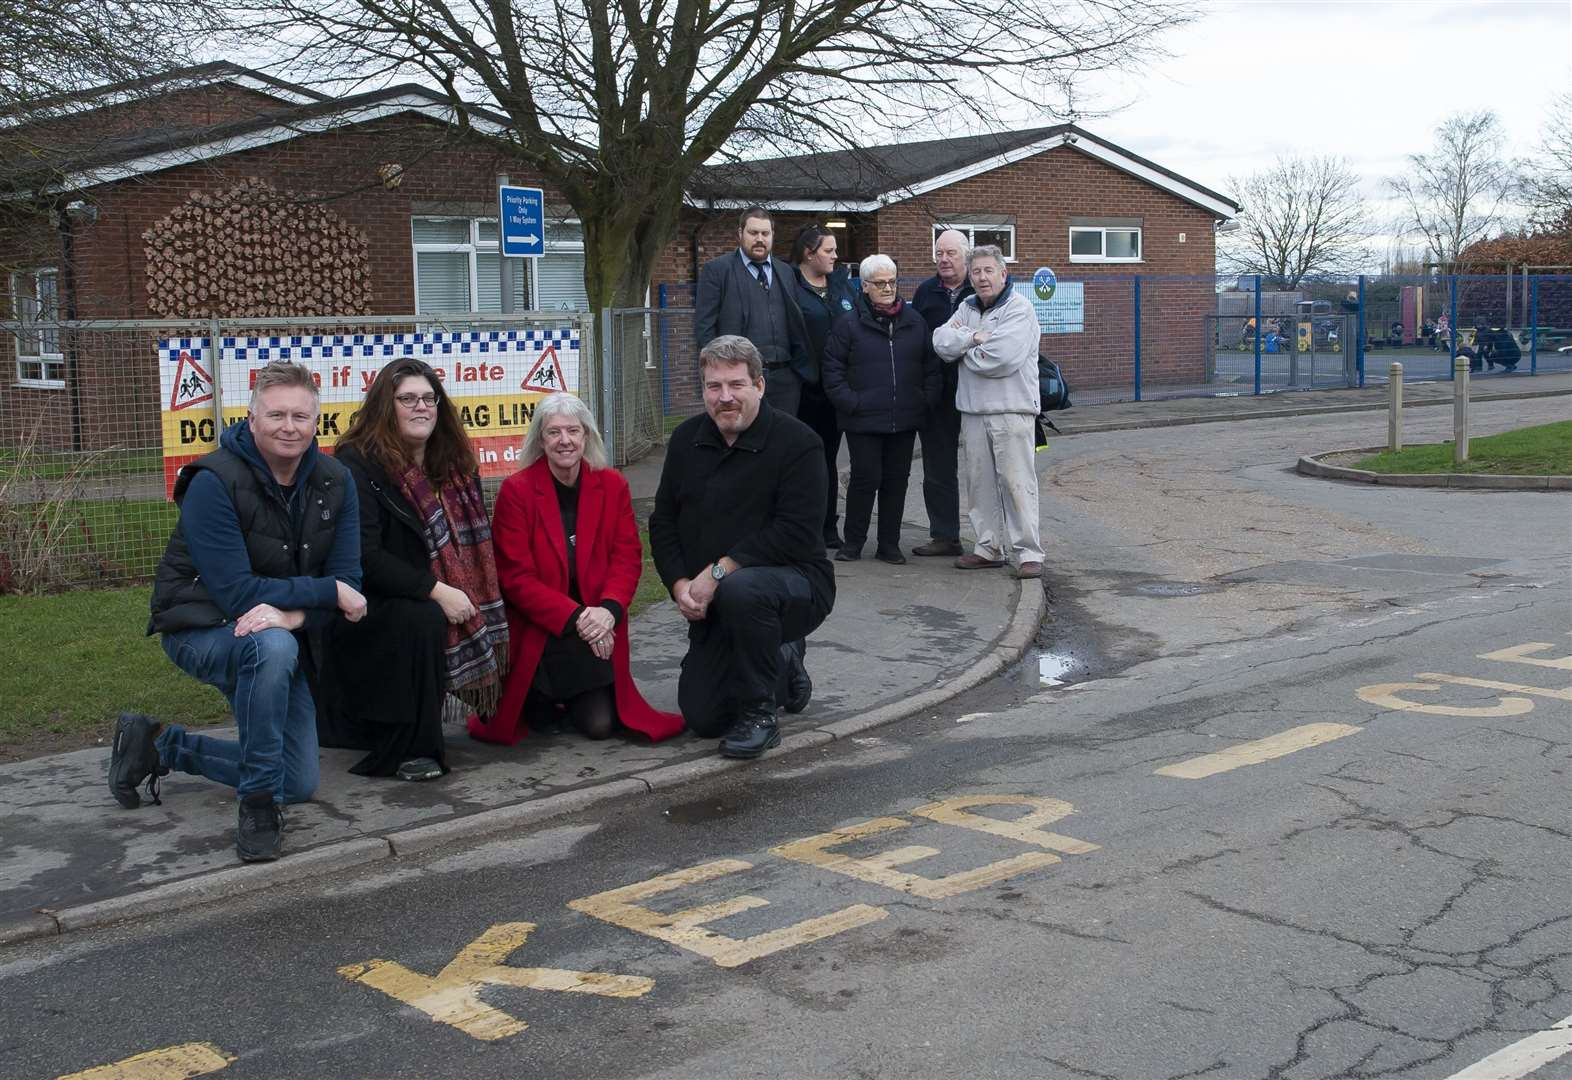 Parents warned over poor parking at West Walton Primary School